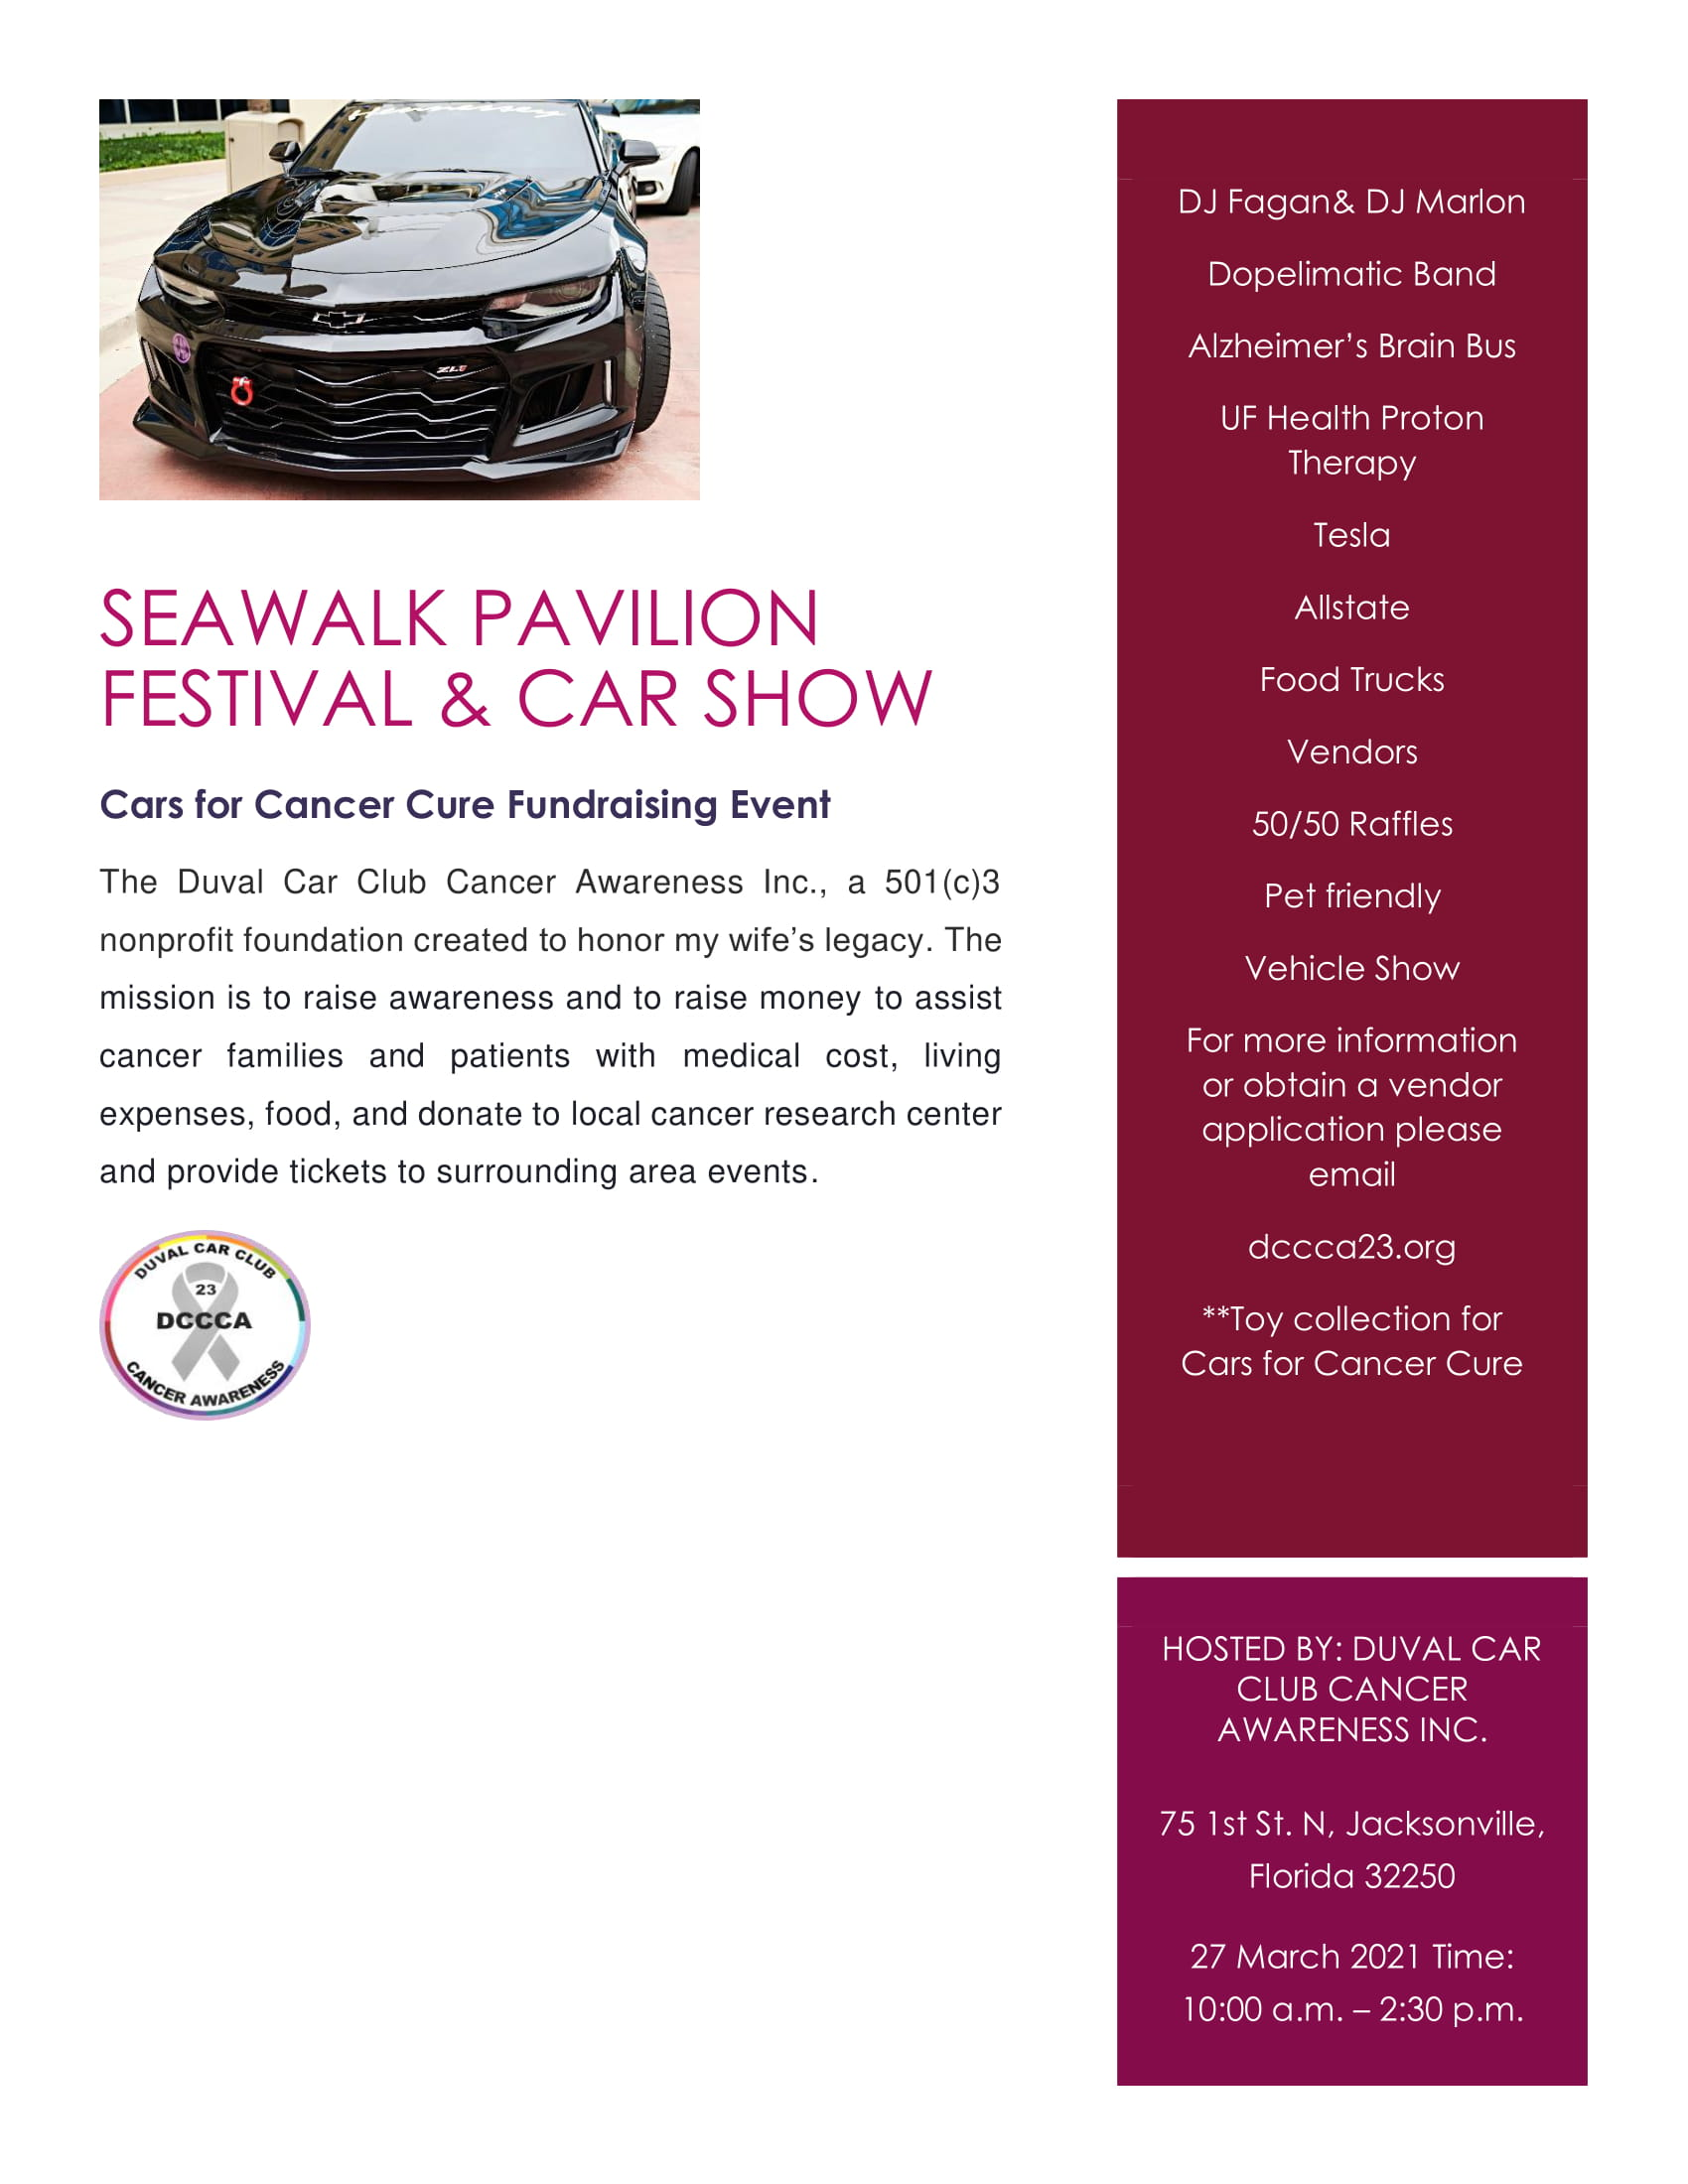 Seawalk Pavilion Festival and Car Show Update March 2021